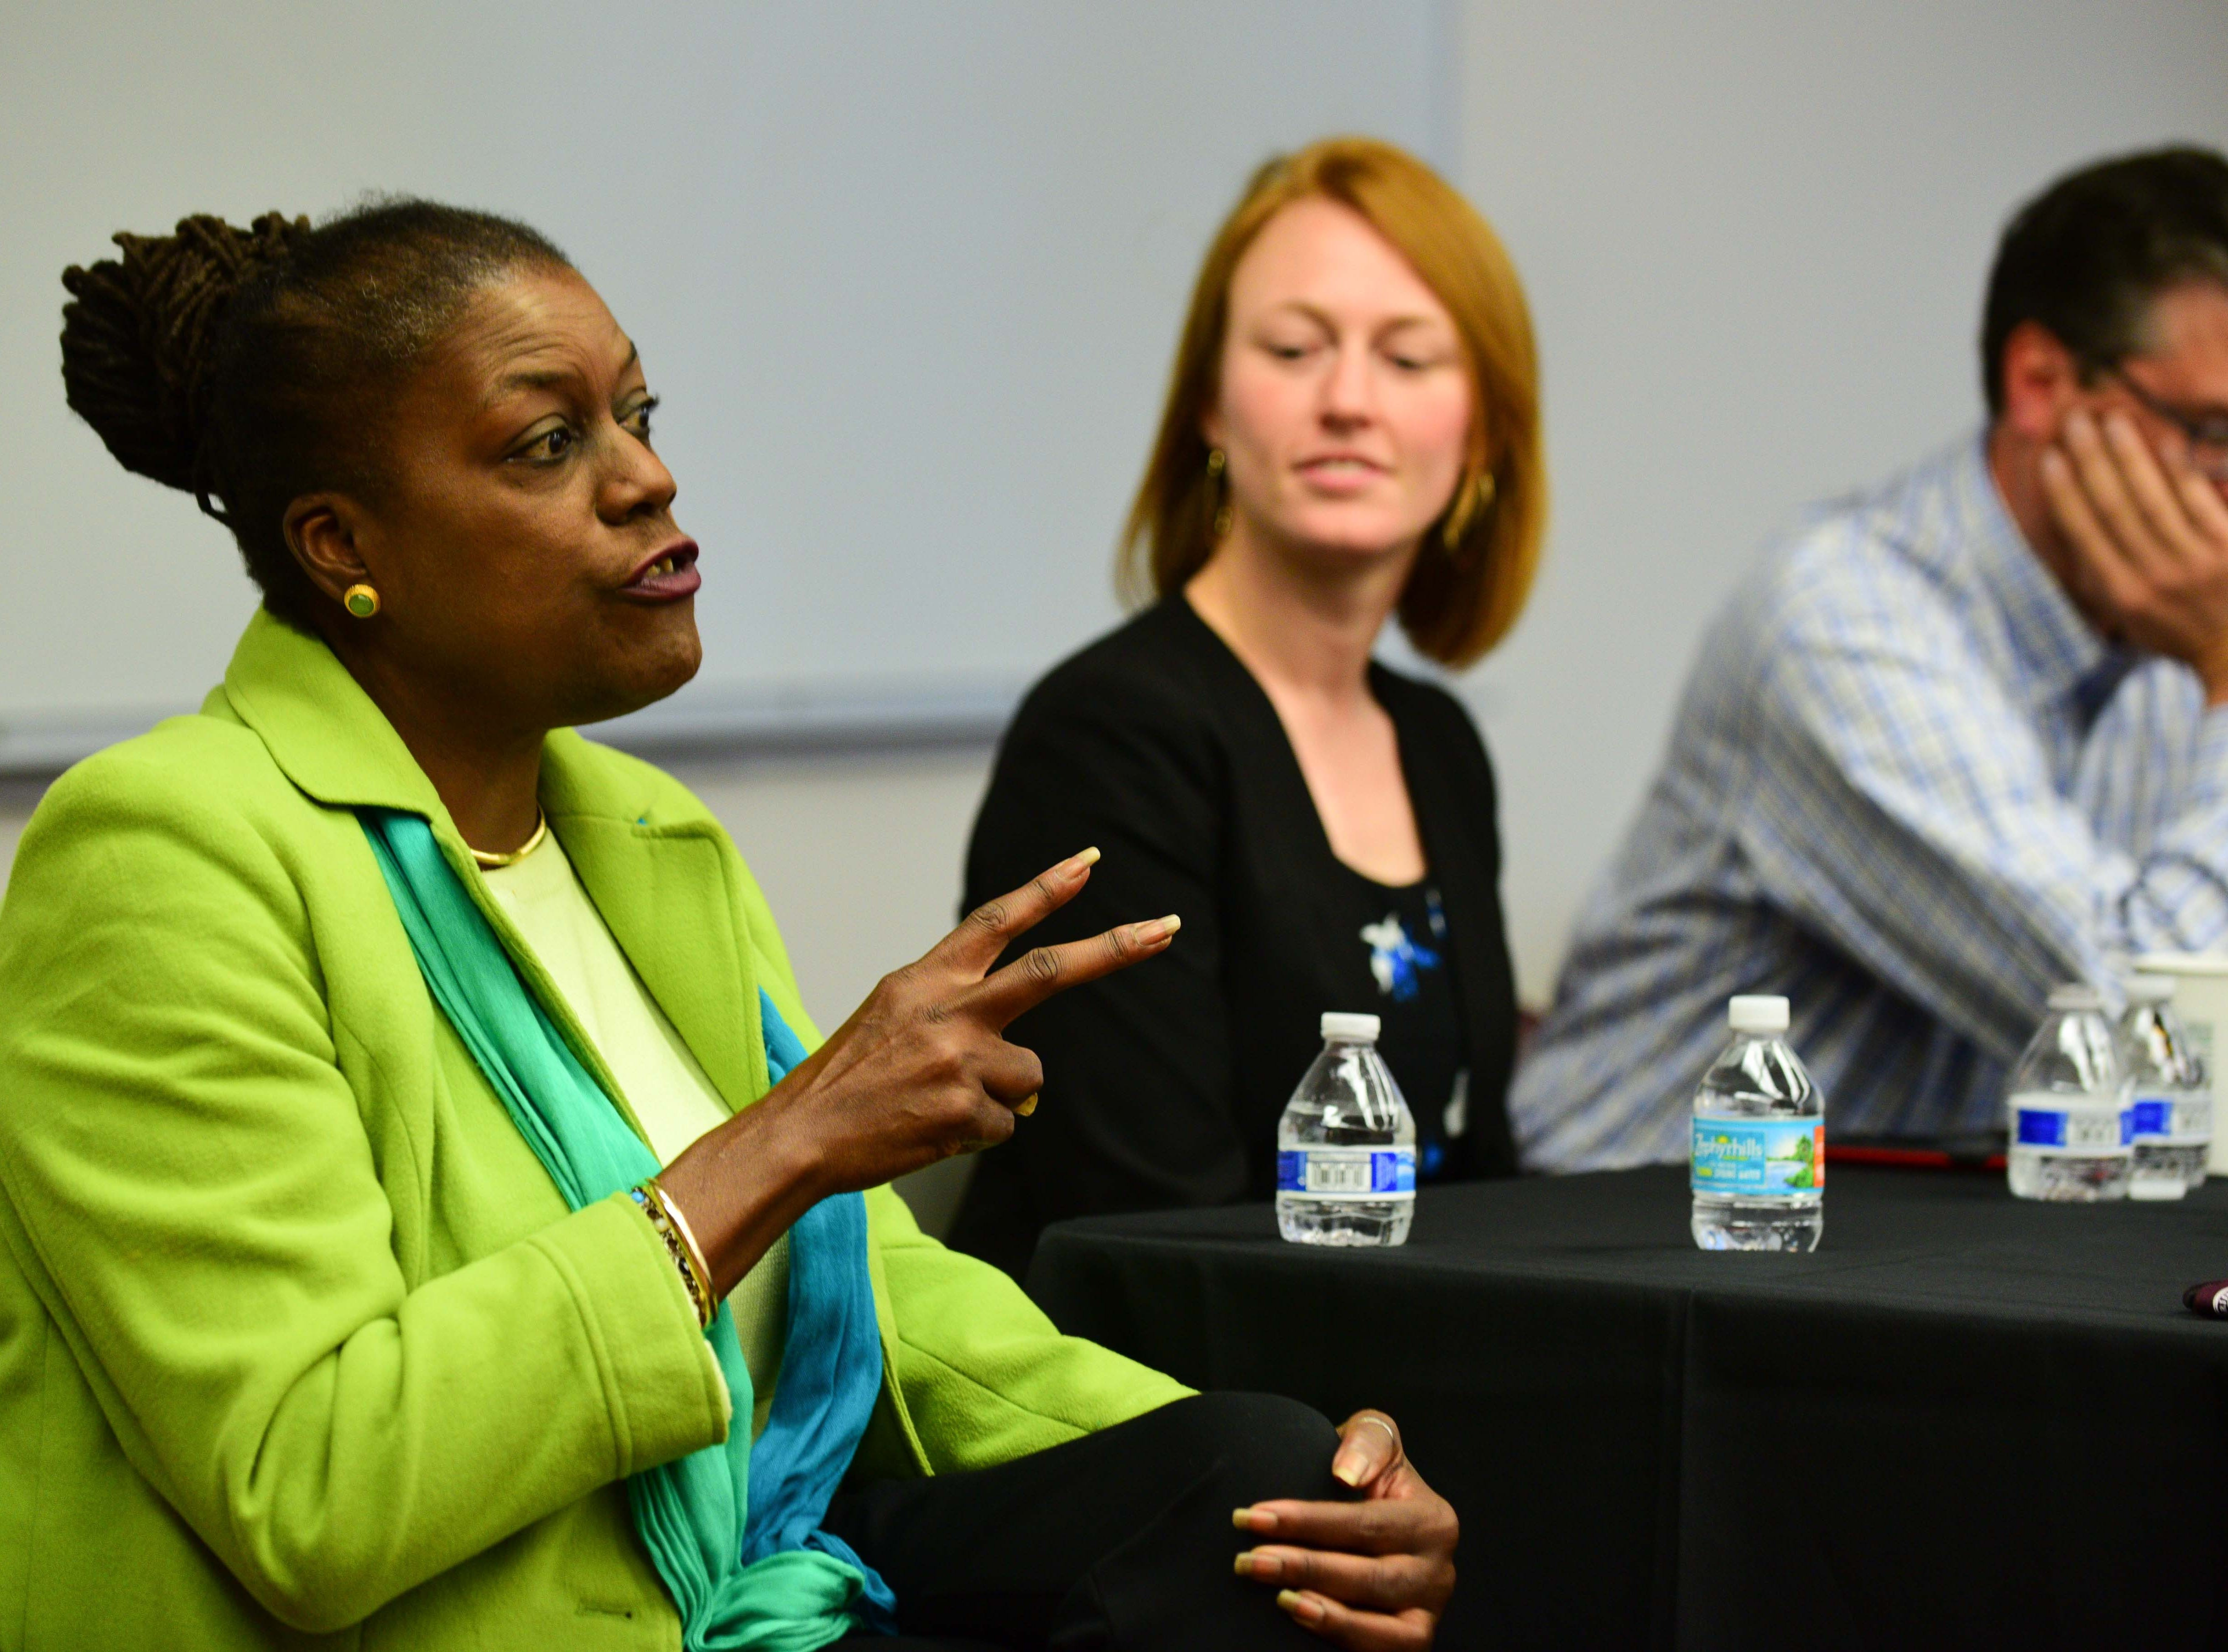 The FSU College of Social Work hosted a panel discussion regarding the impact of poverty in the Big Bend area on Friday.